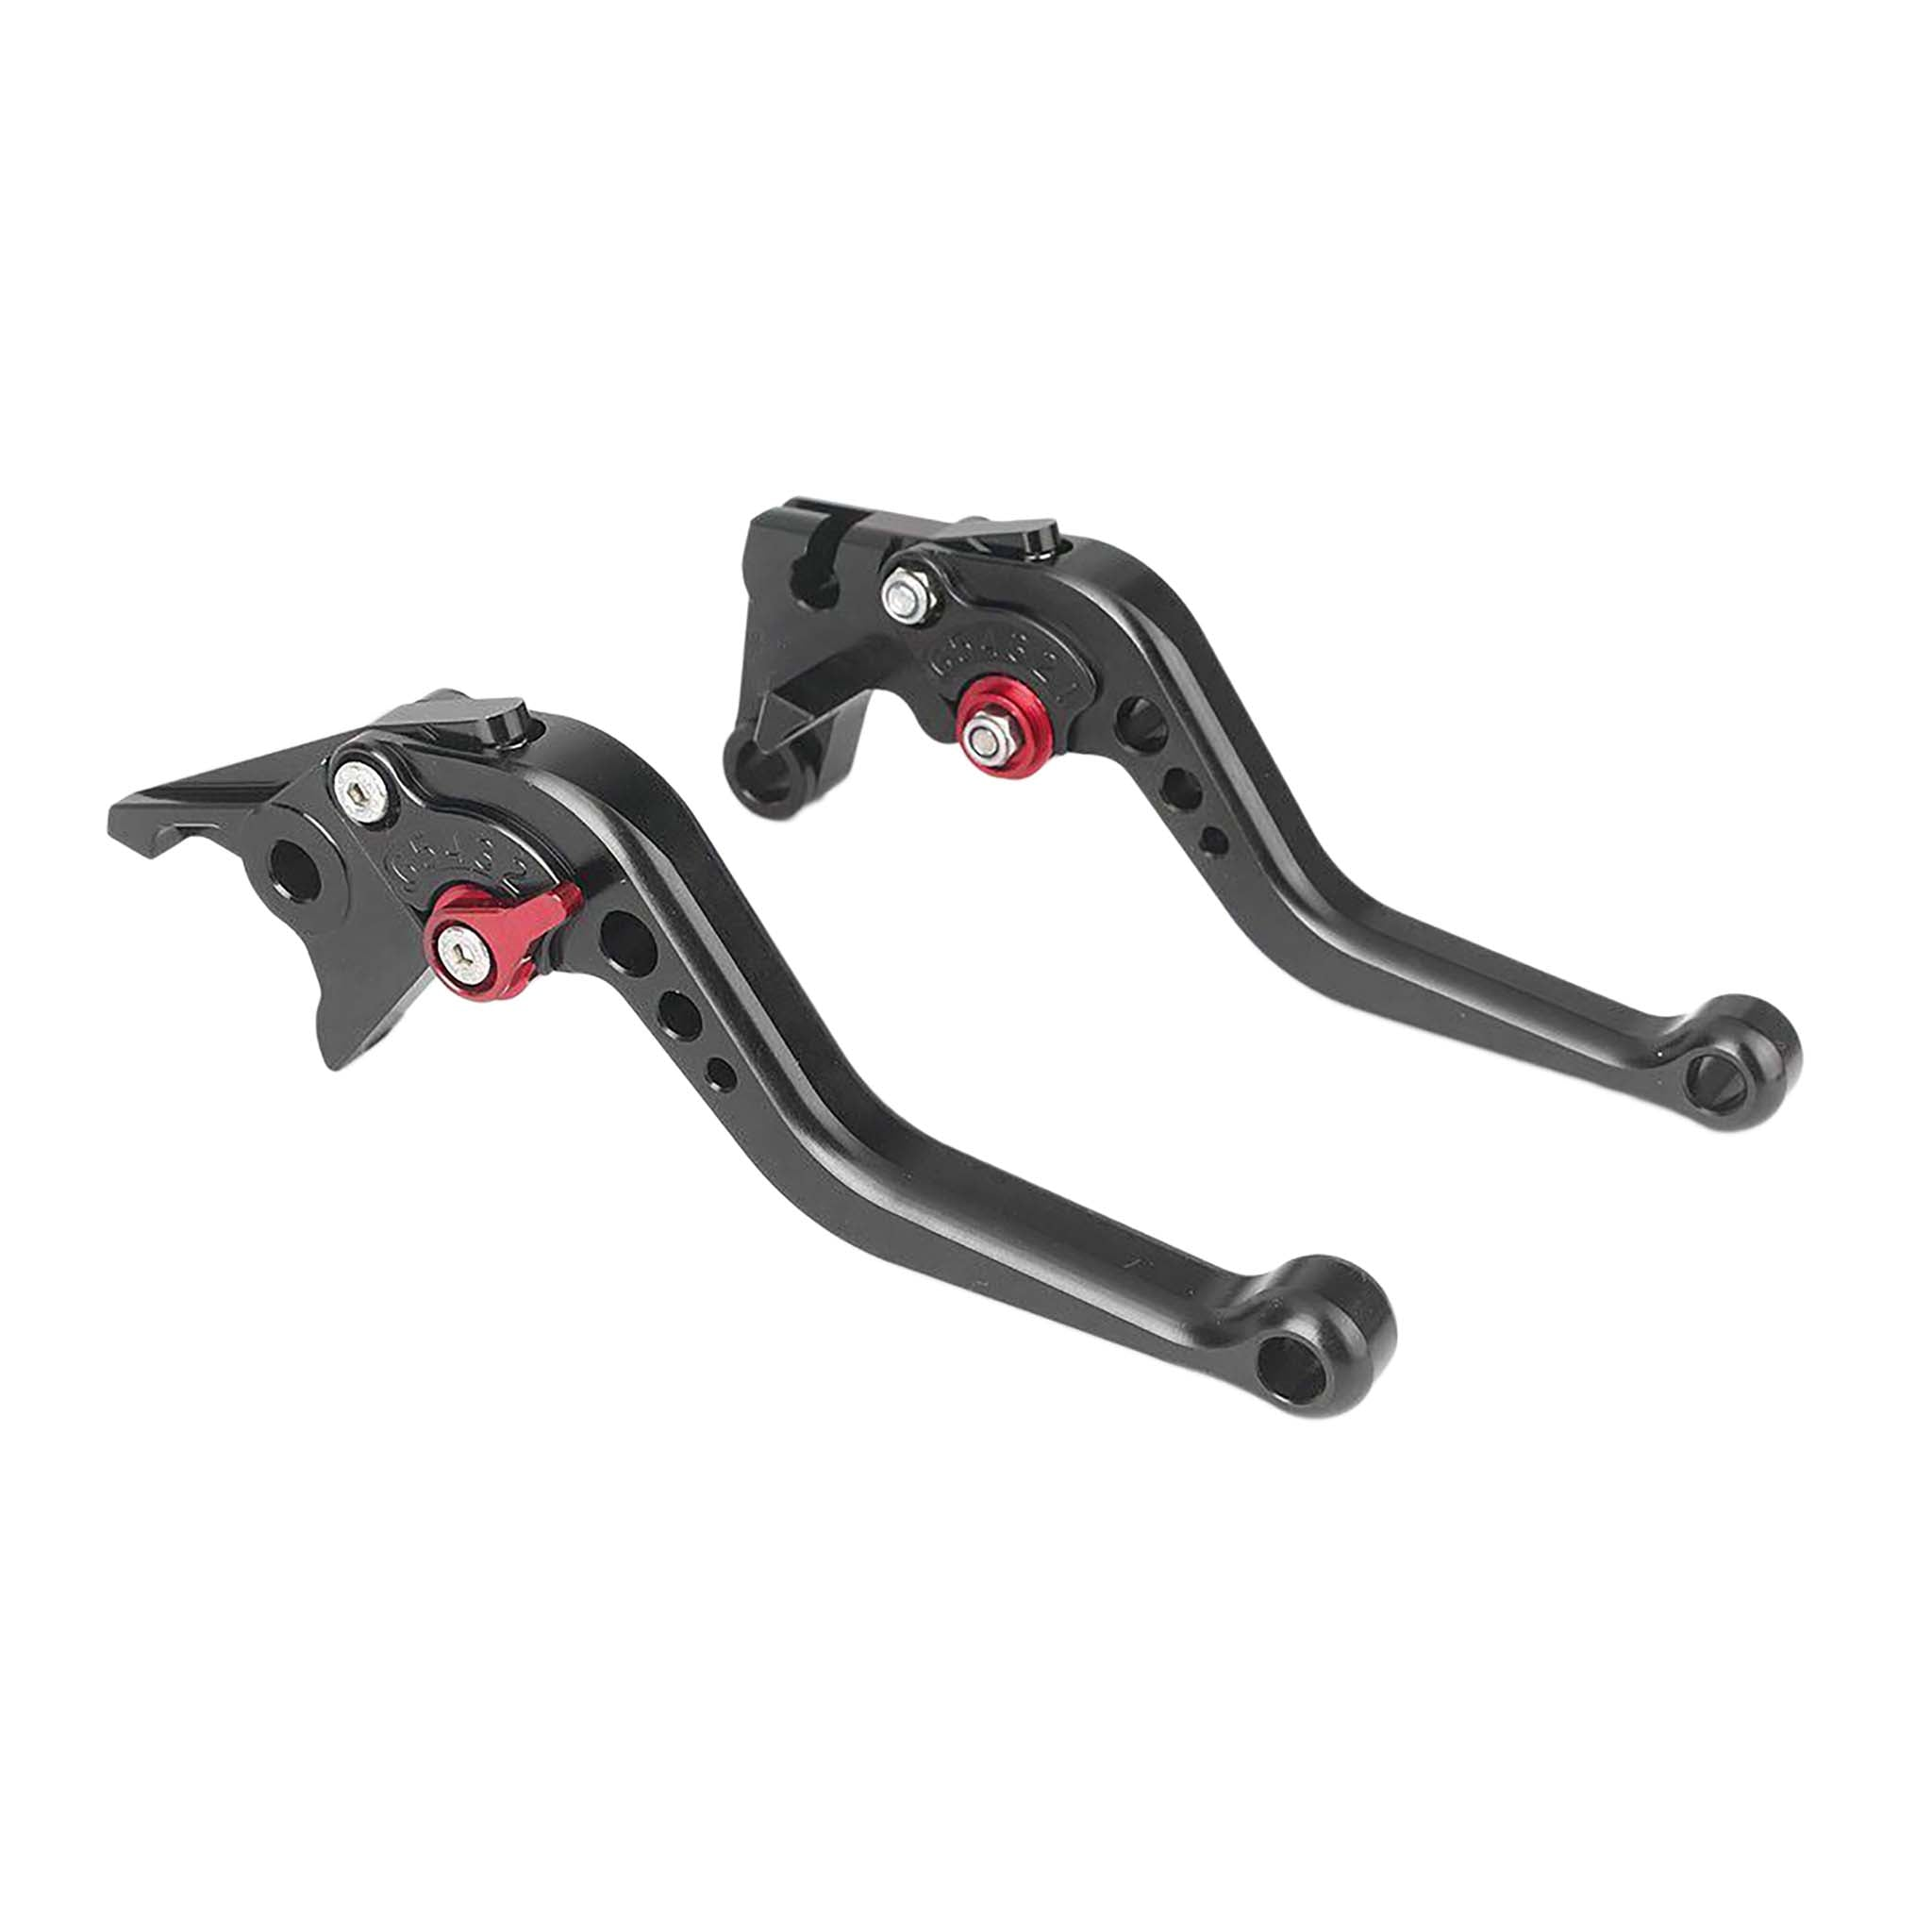 Short Clutch & Brake Lever Set For Yamaha YZF R1 1999-2001